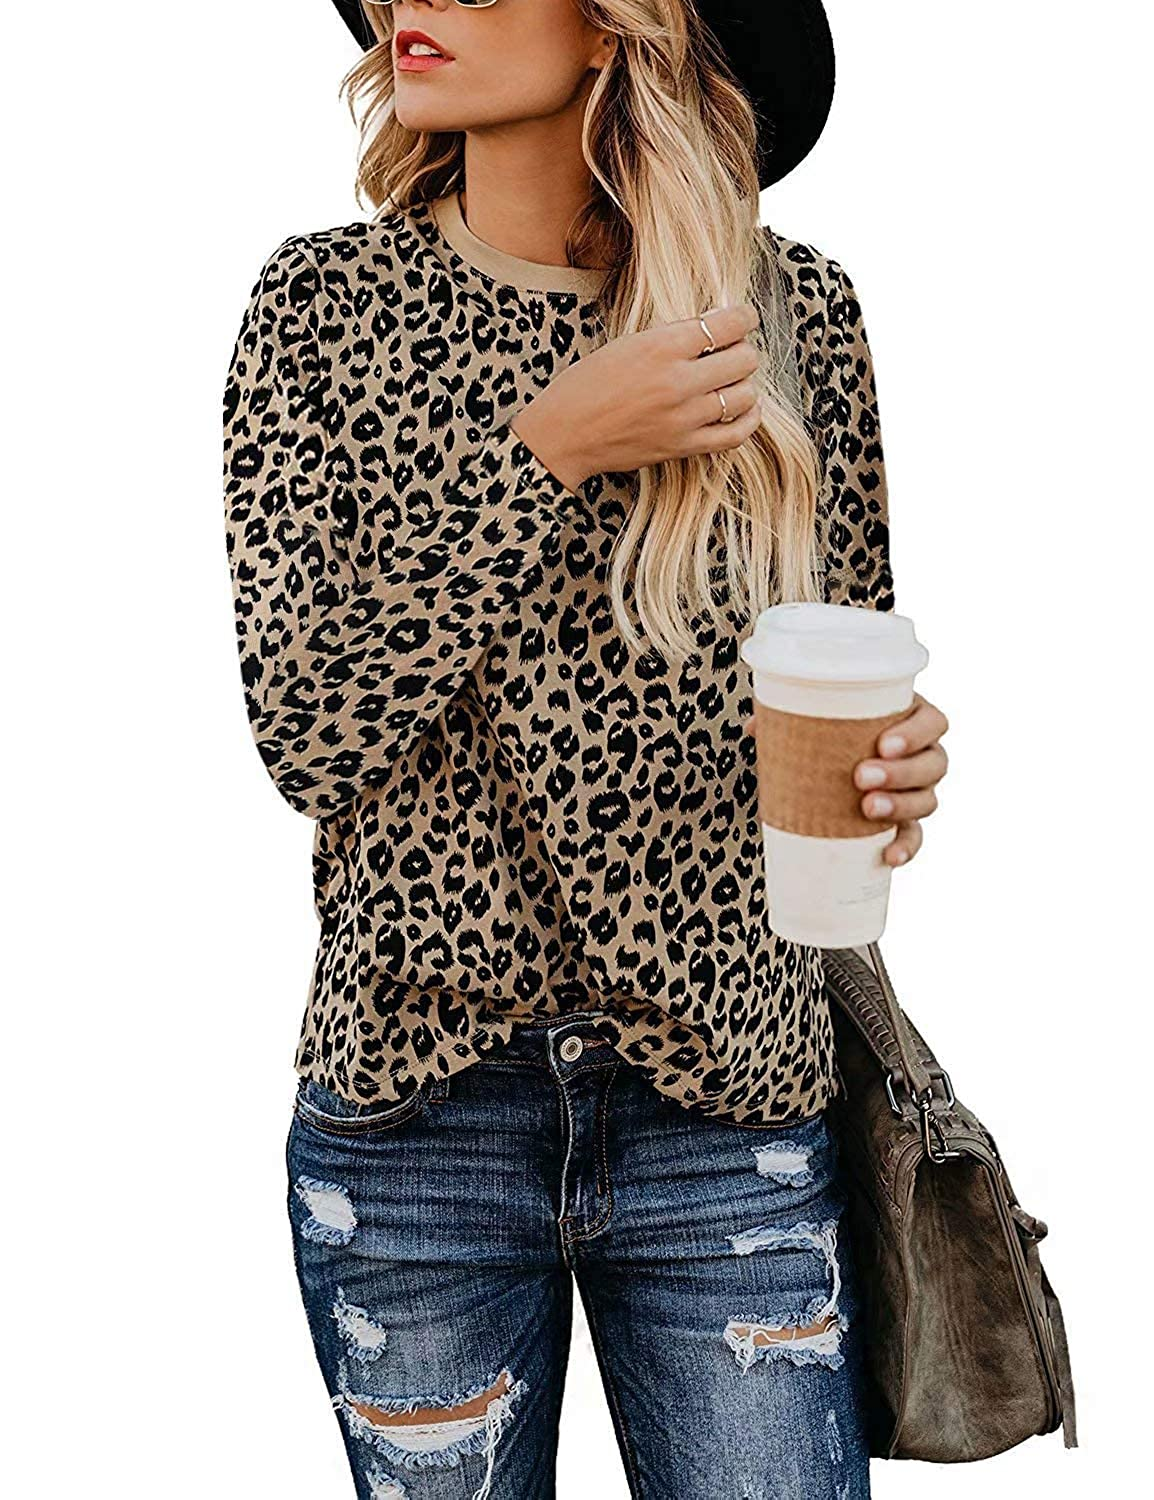 Youdiao Women/'s Casual V Neck Leopard Print Tops Summer Cute Shirts Basic Short Sleeve Tees Blouse